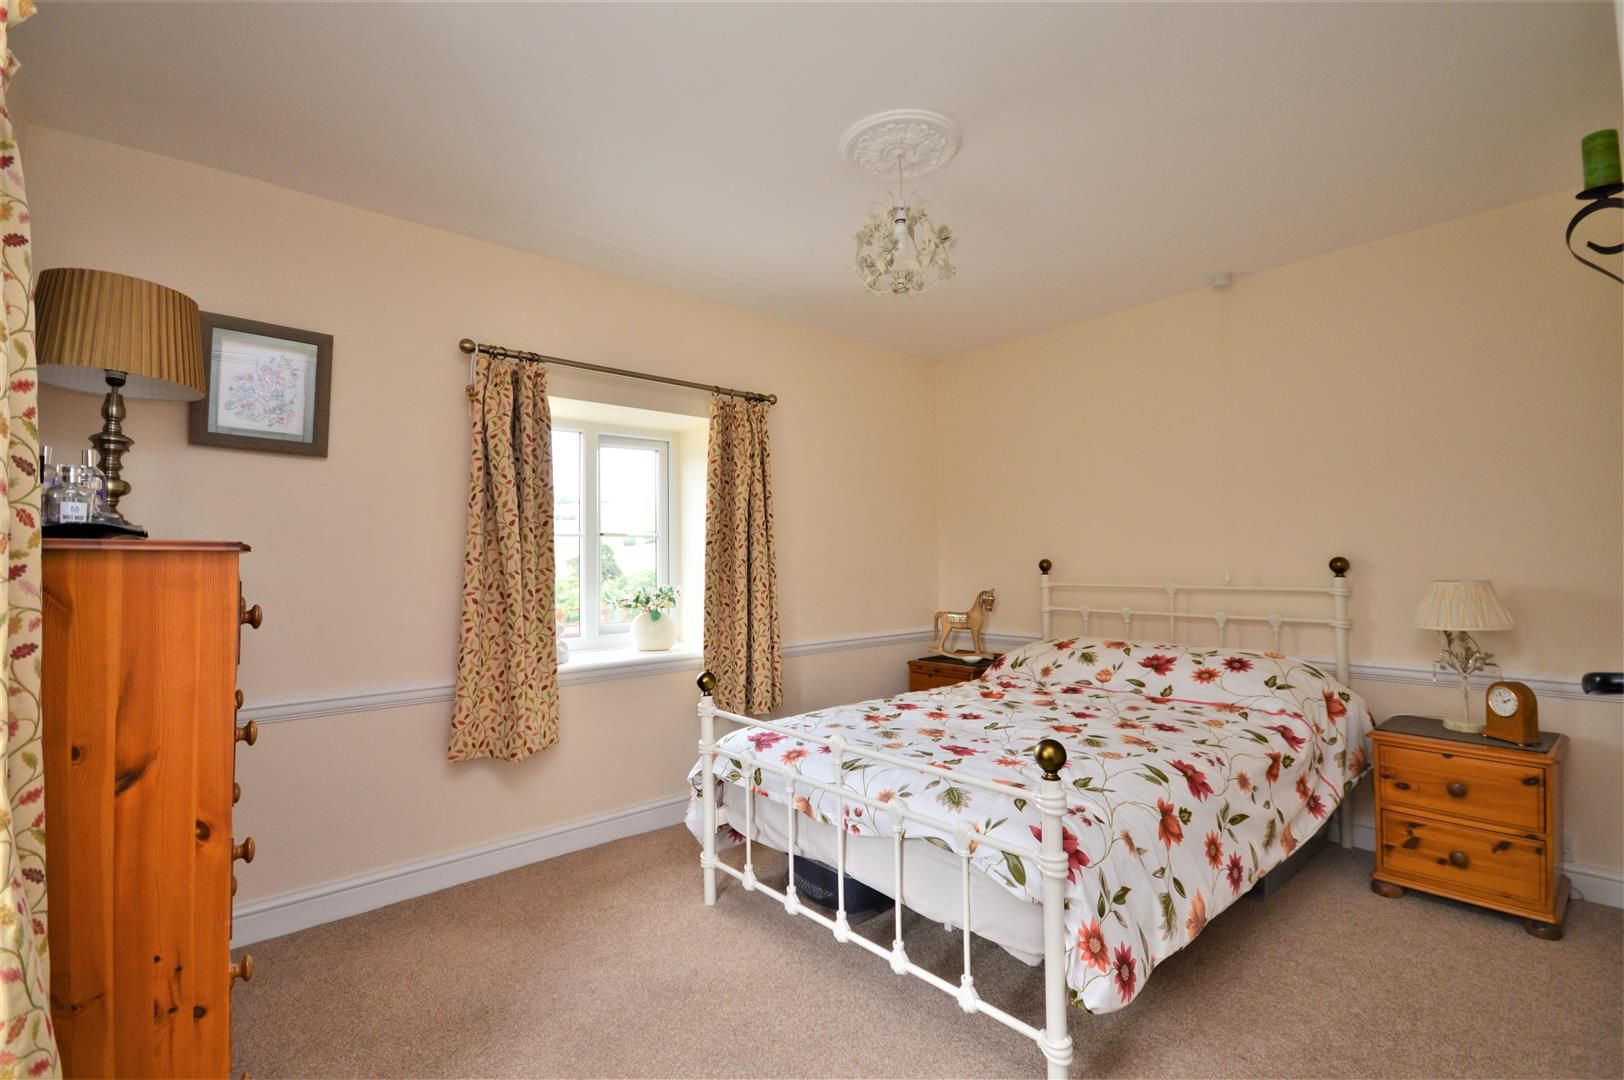 3 bed detached for sale in Orcop  - Property Image 19